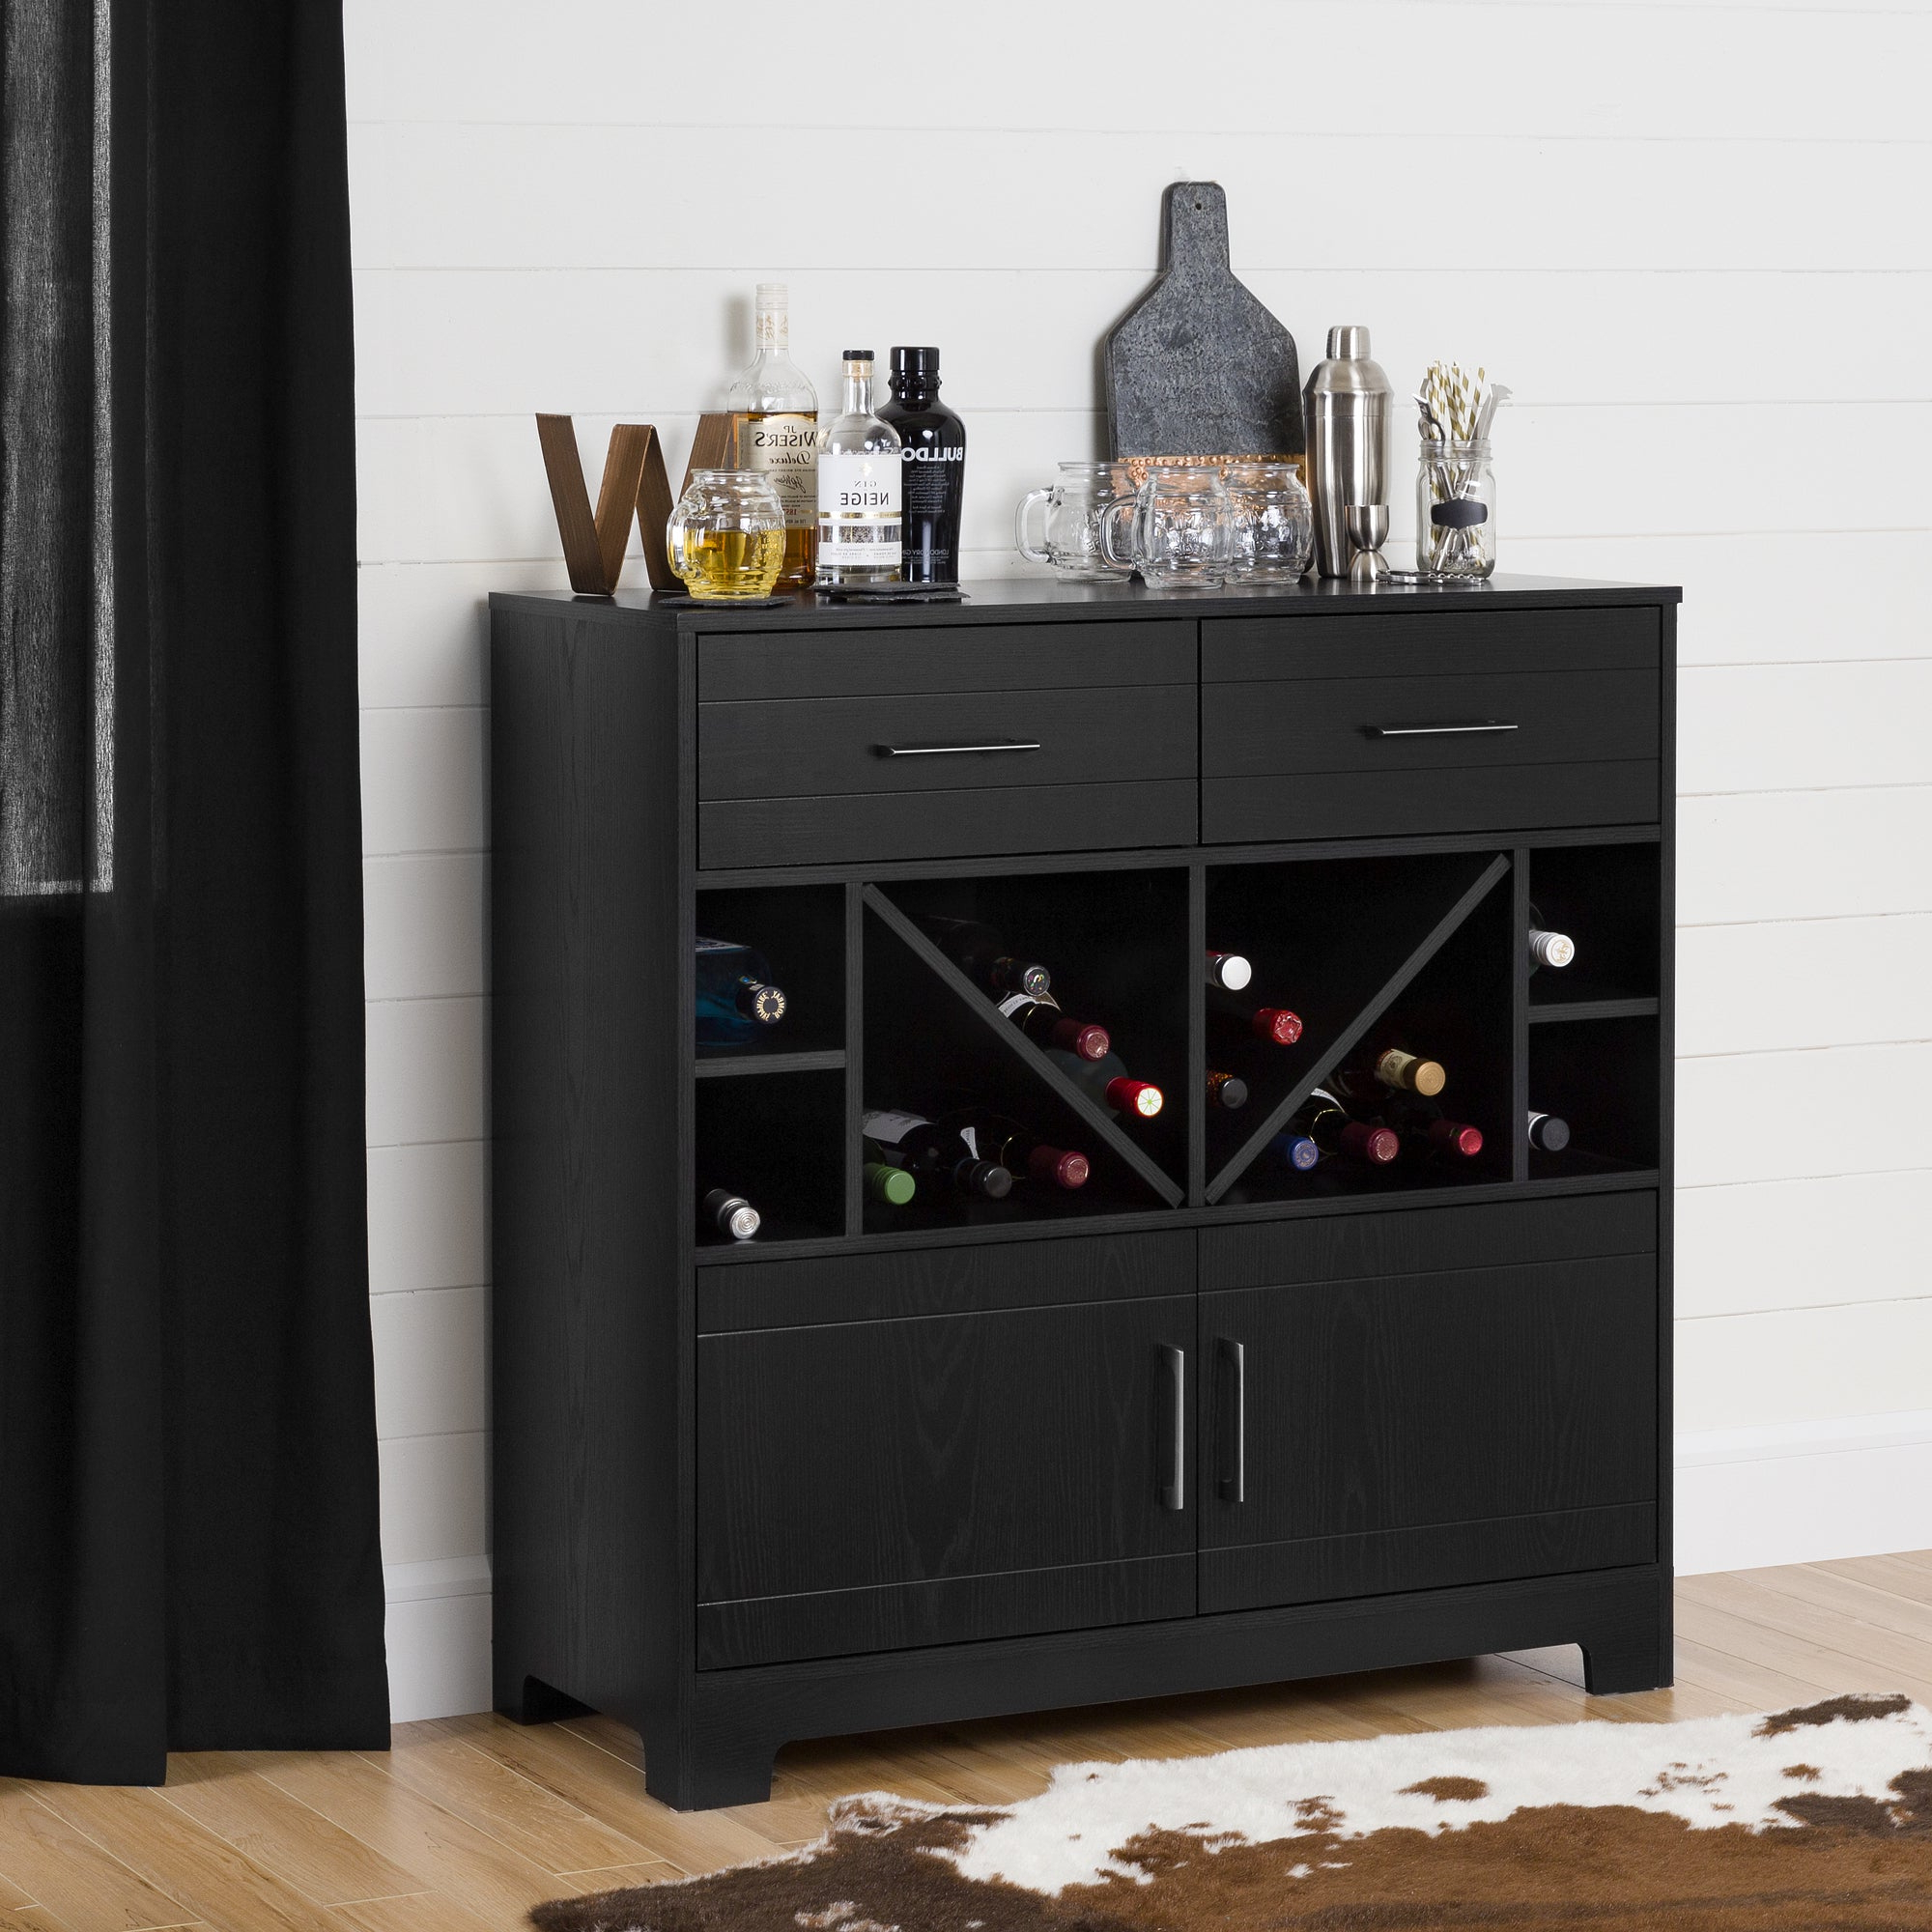 Buy Wine Bottle Storage South Shore Furniture Buffets With Buffets With Bottle And Glass Storage (View 13 of 20)